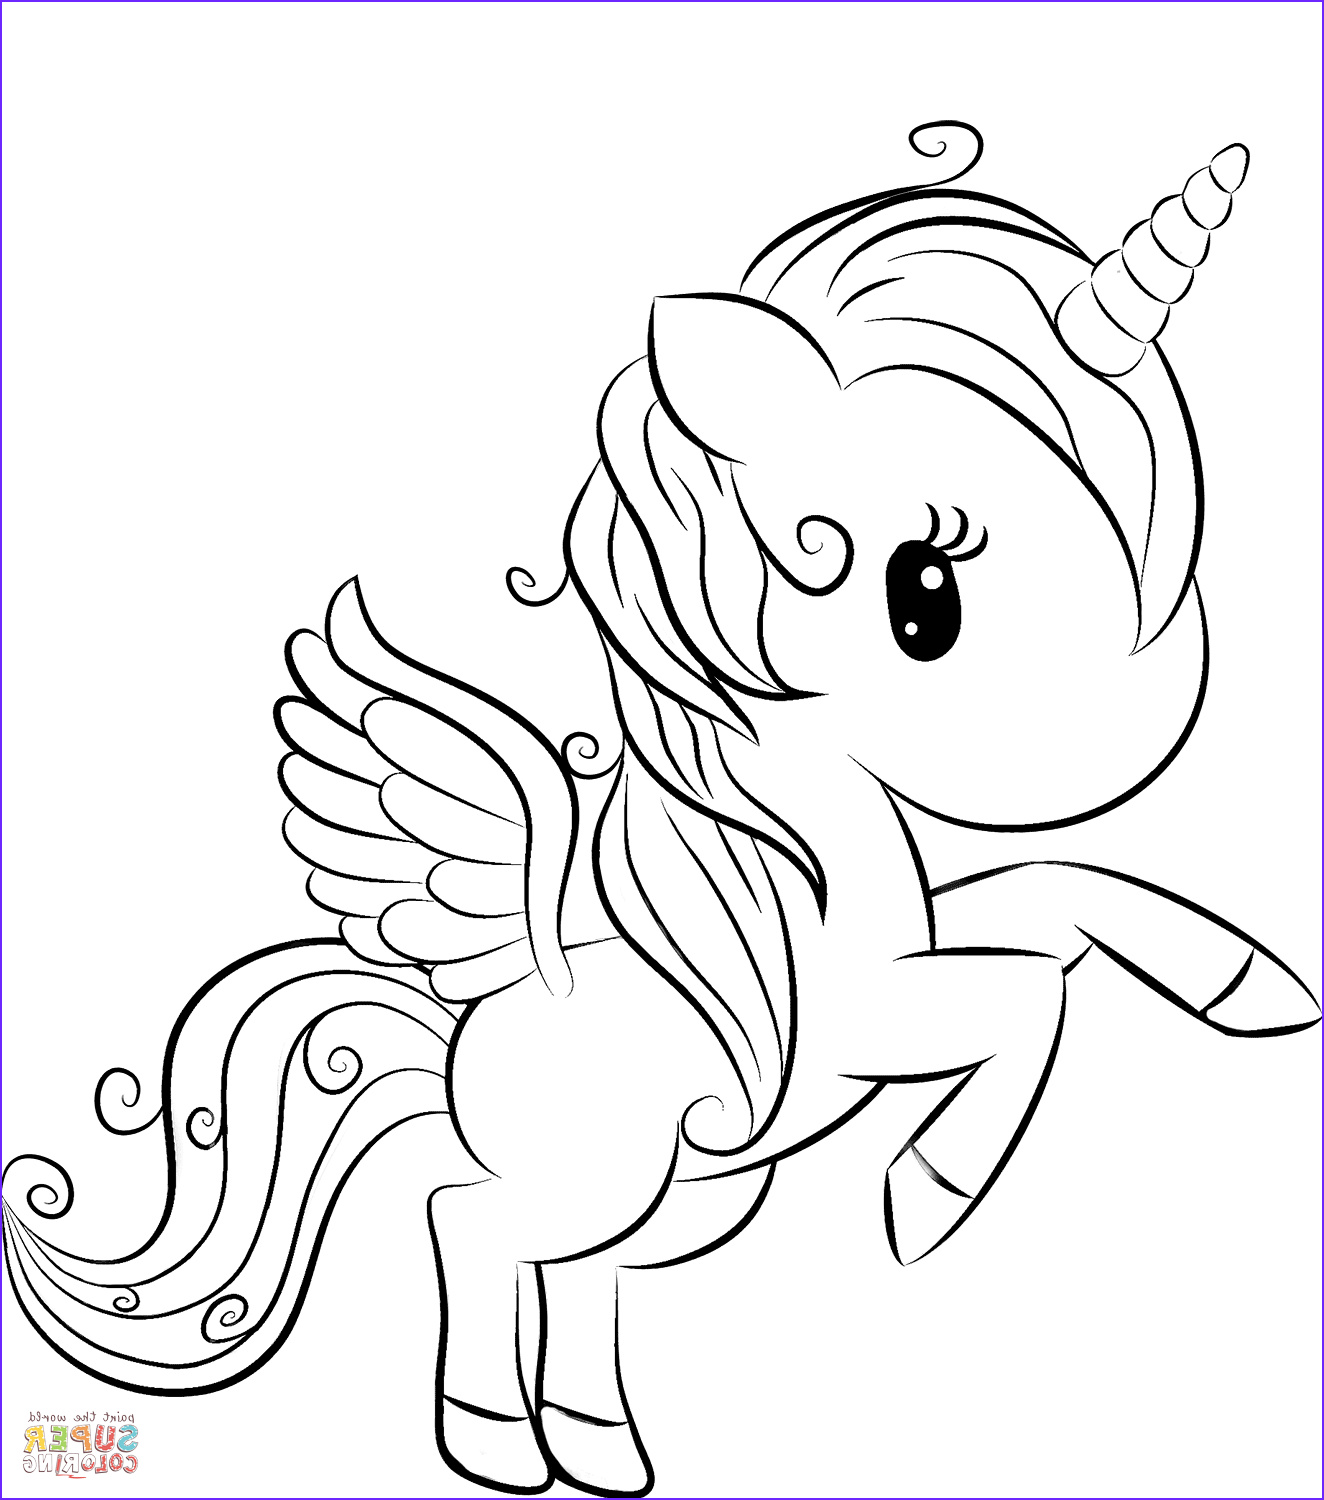 Unicorn Printable Coloring Pages Elegant Images Cute Unicorn Coloring Page